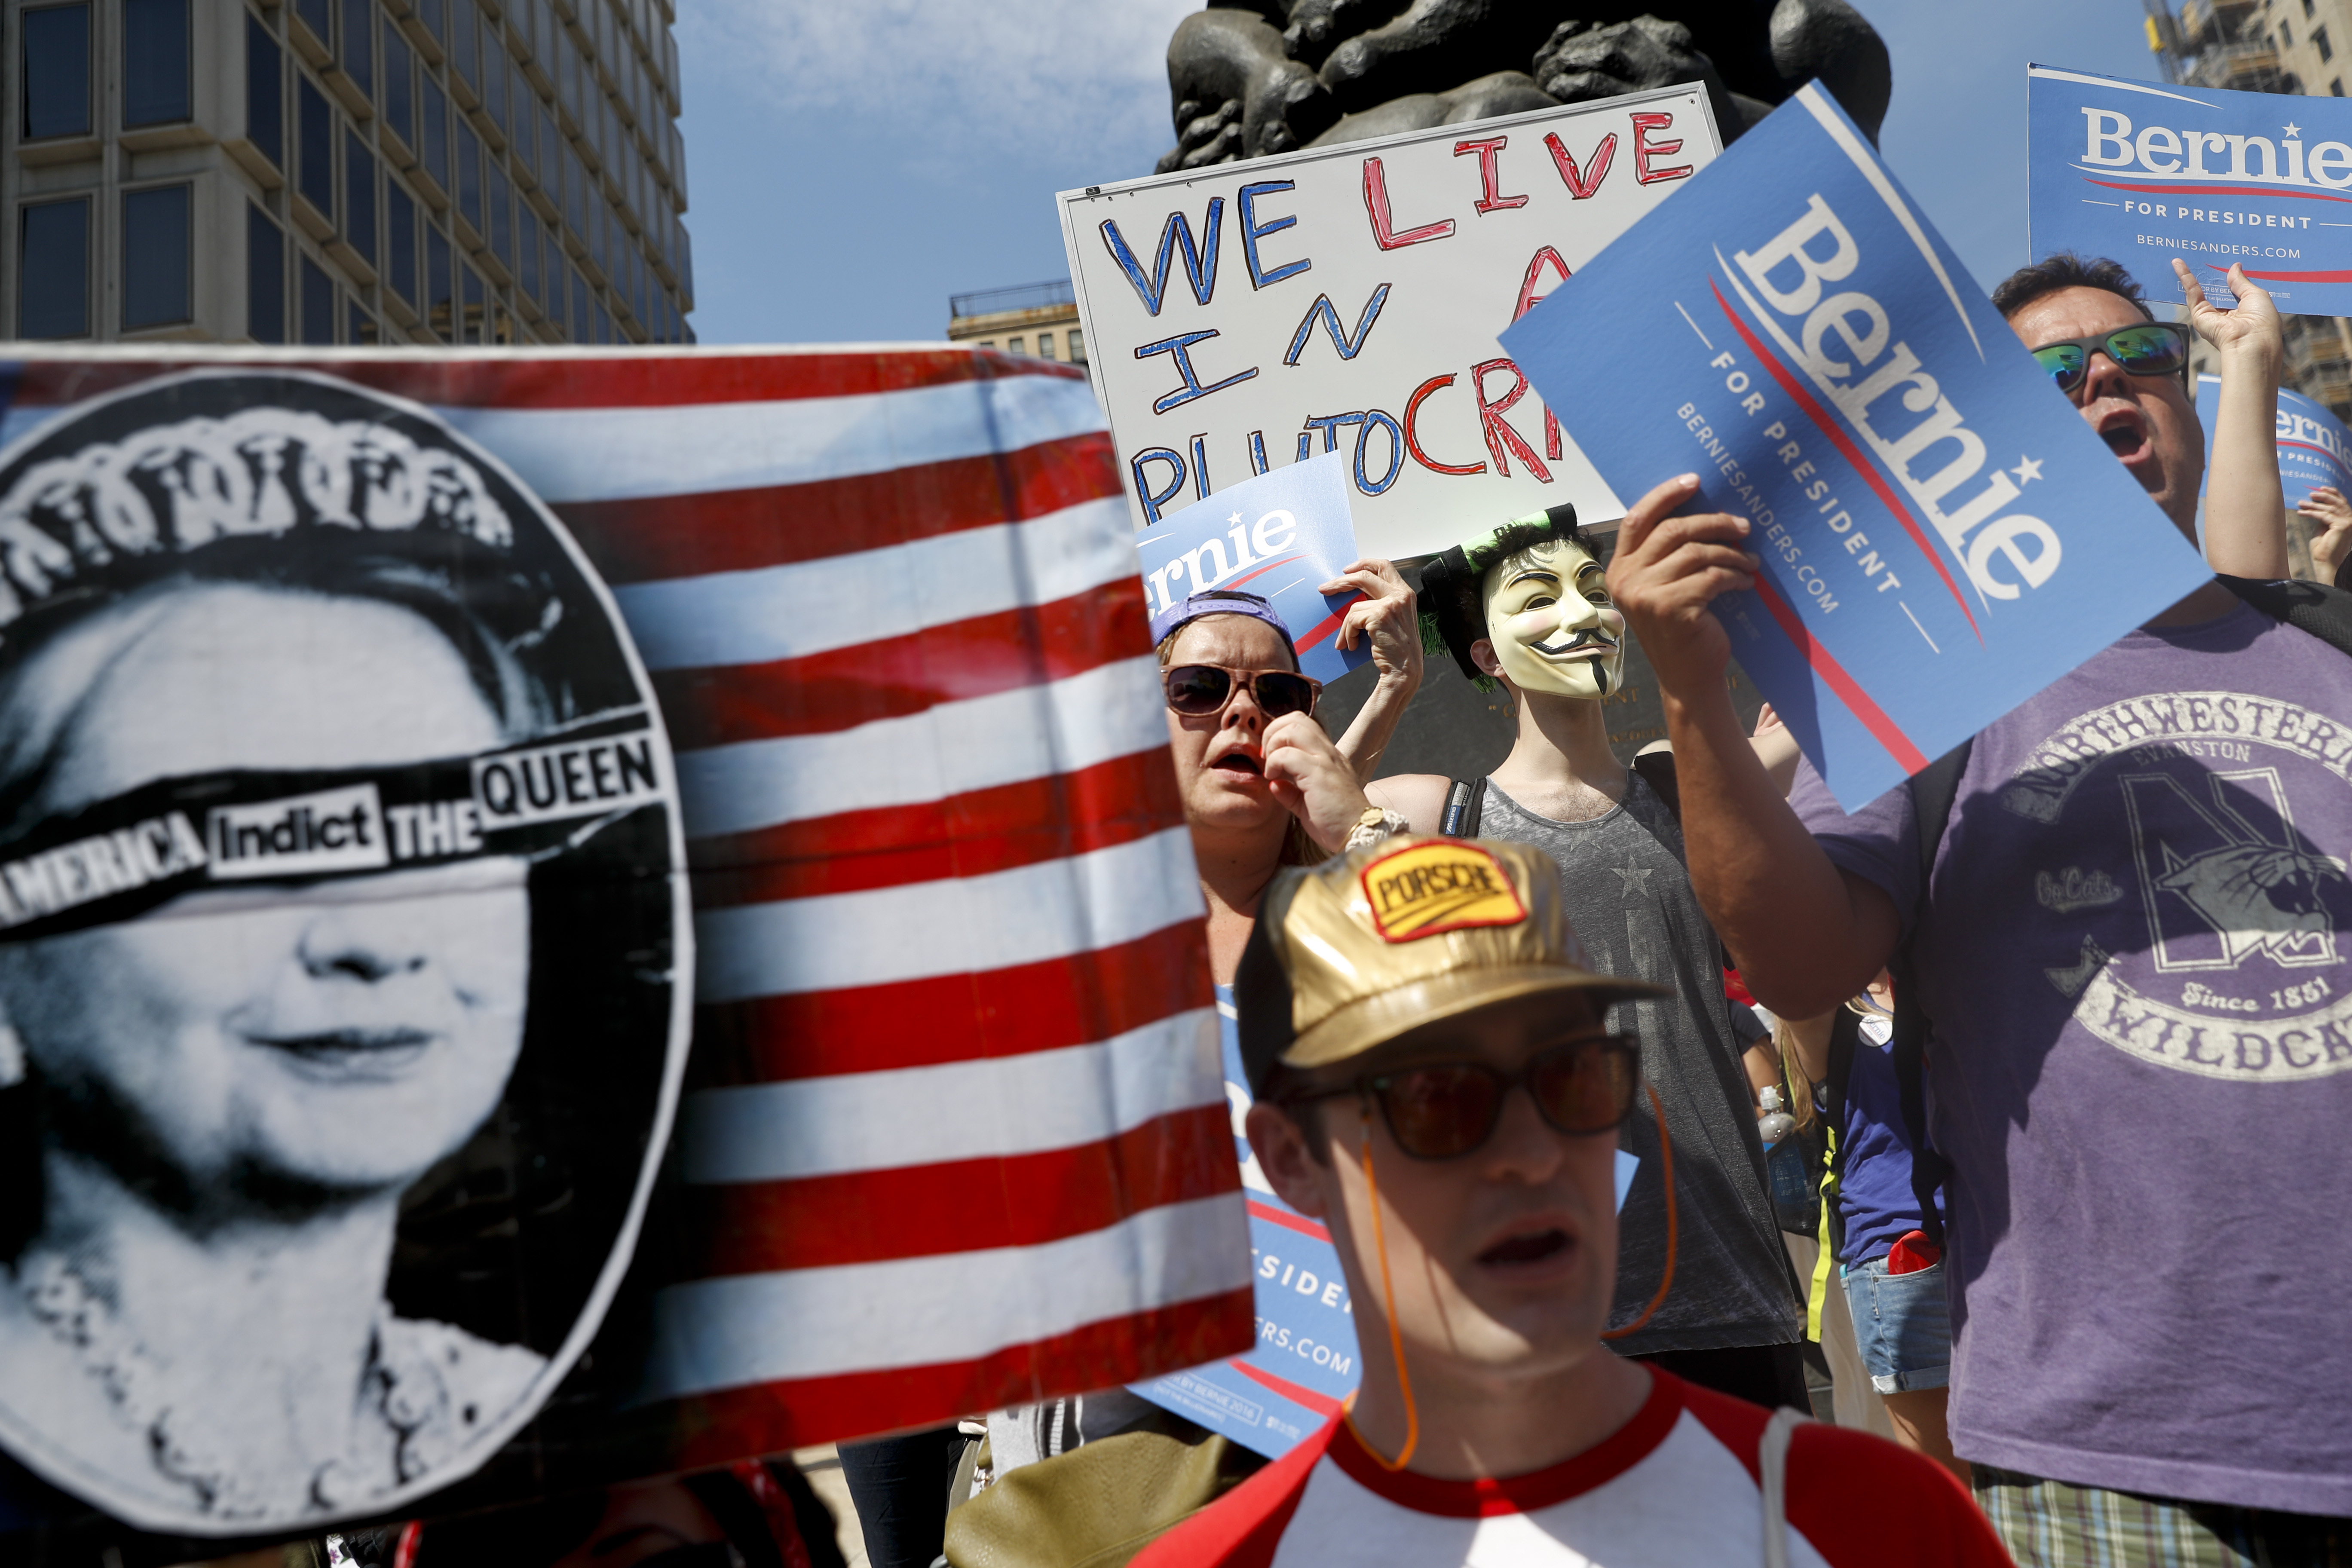 Supporters of Sen. Bernie Sanders, I-Vt., march during a protest in downtown on Sunday, July 24, 2016, in Philadelphia. (AP Photo/John Minchillo)